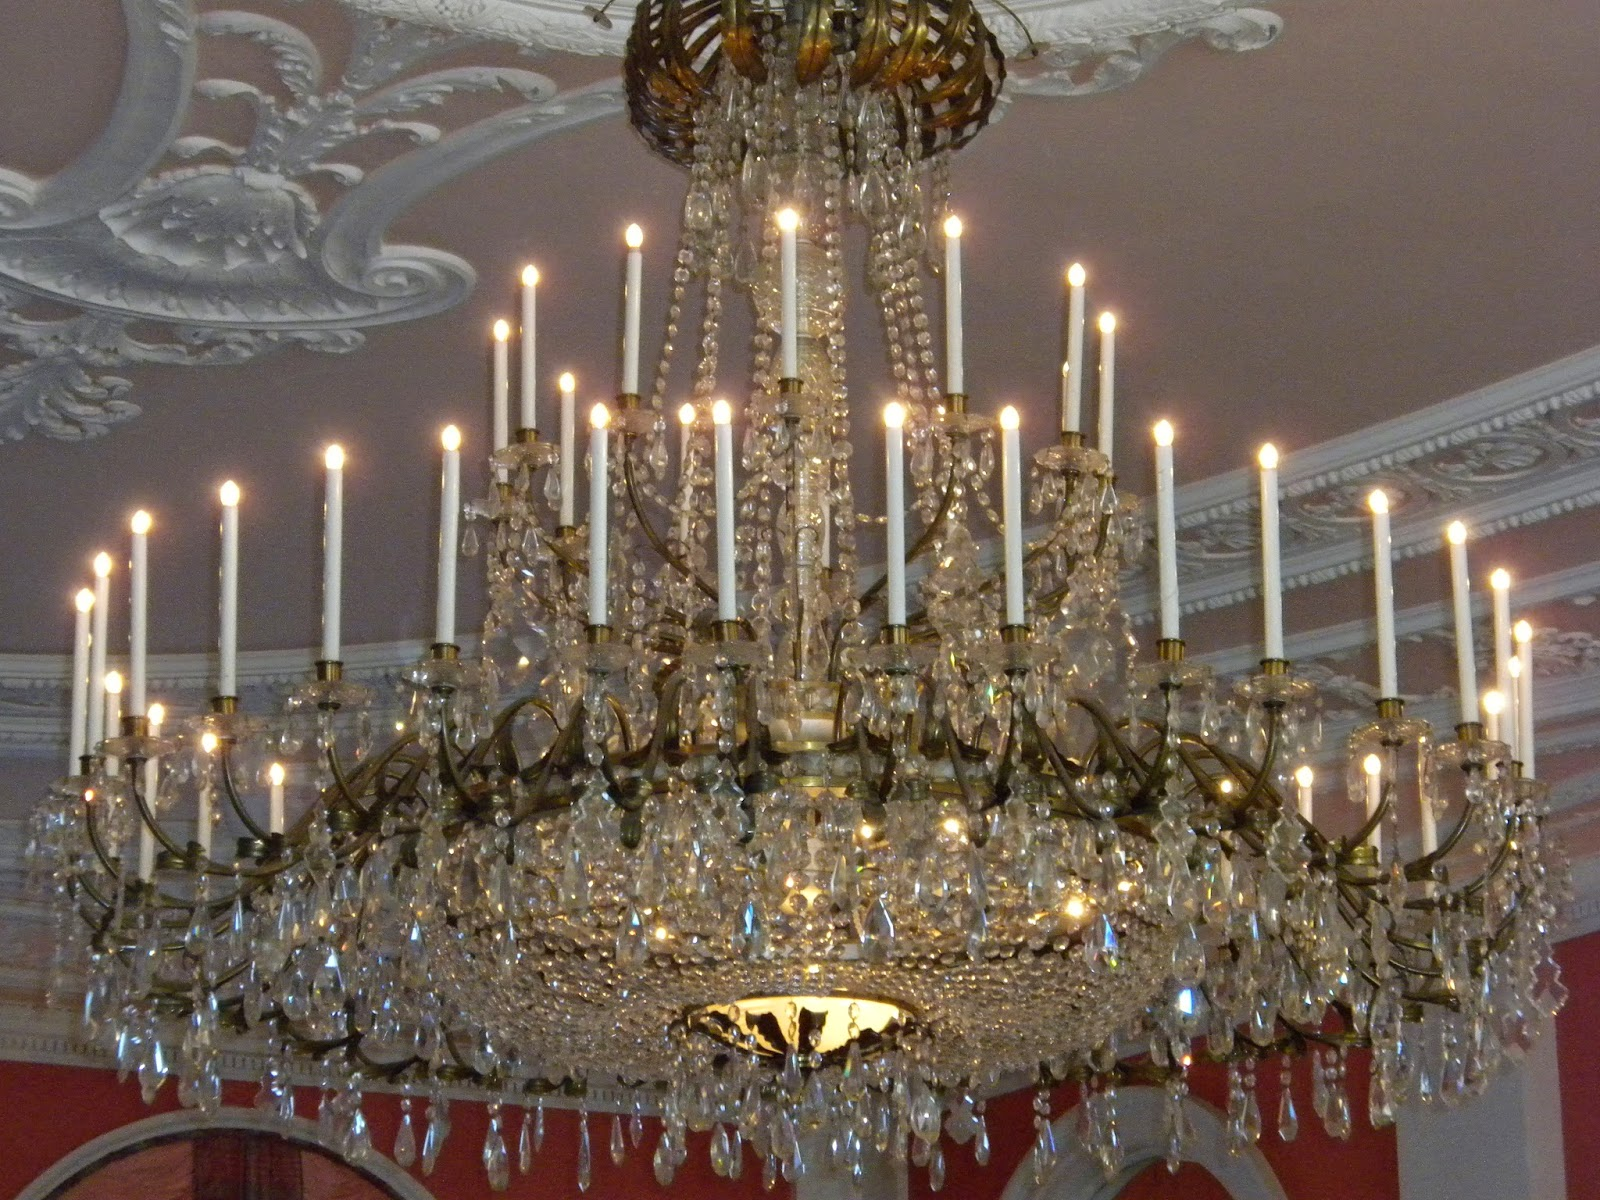 Panoply the historic wv greenbrier americas resort closeup of chandelier in cameo ballroom at the greenbrier arubaitofo Choice Image